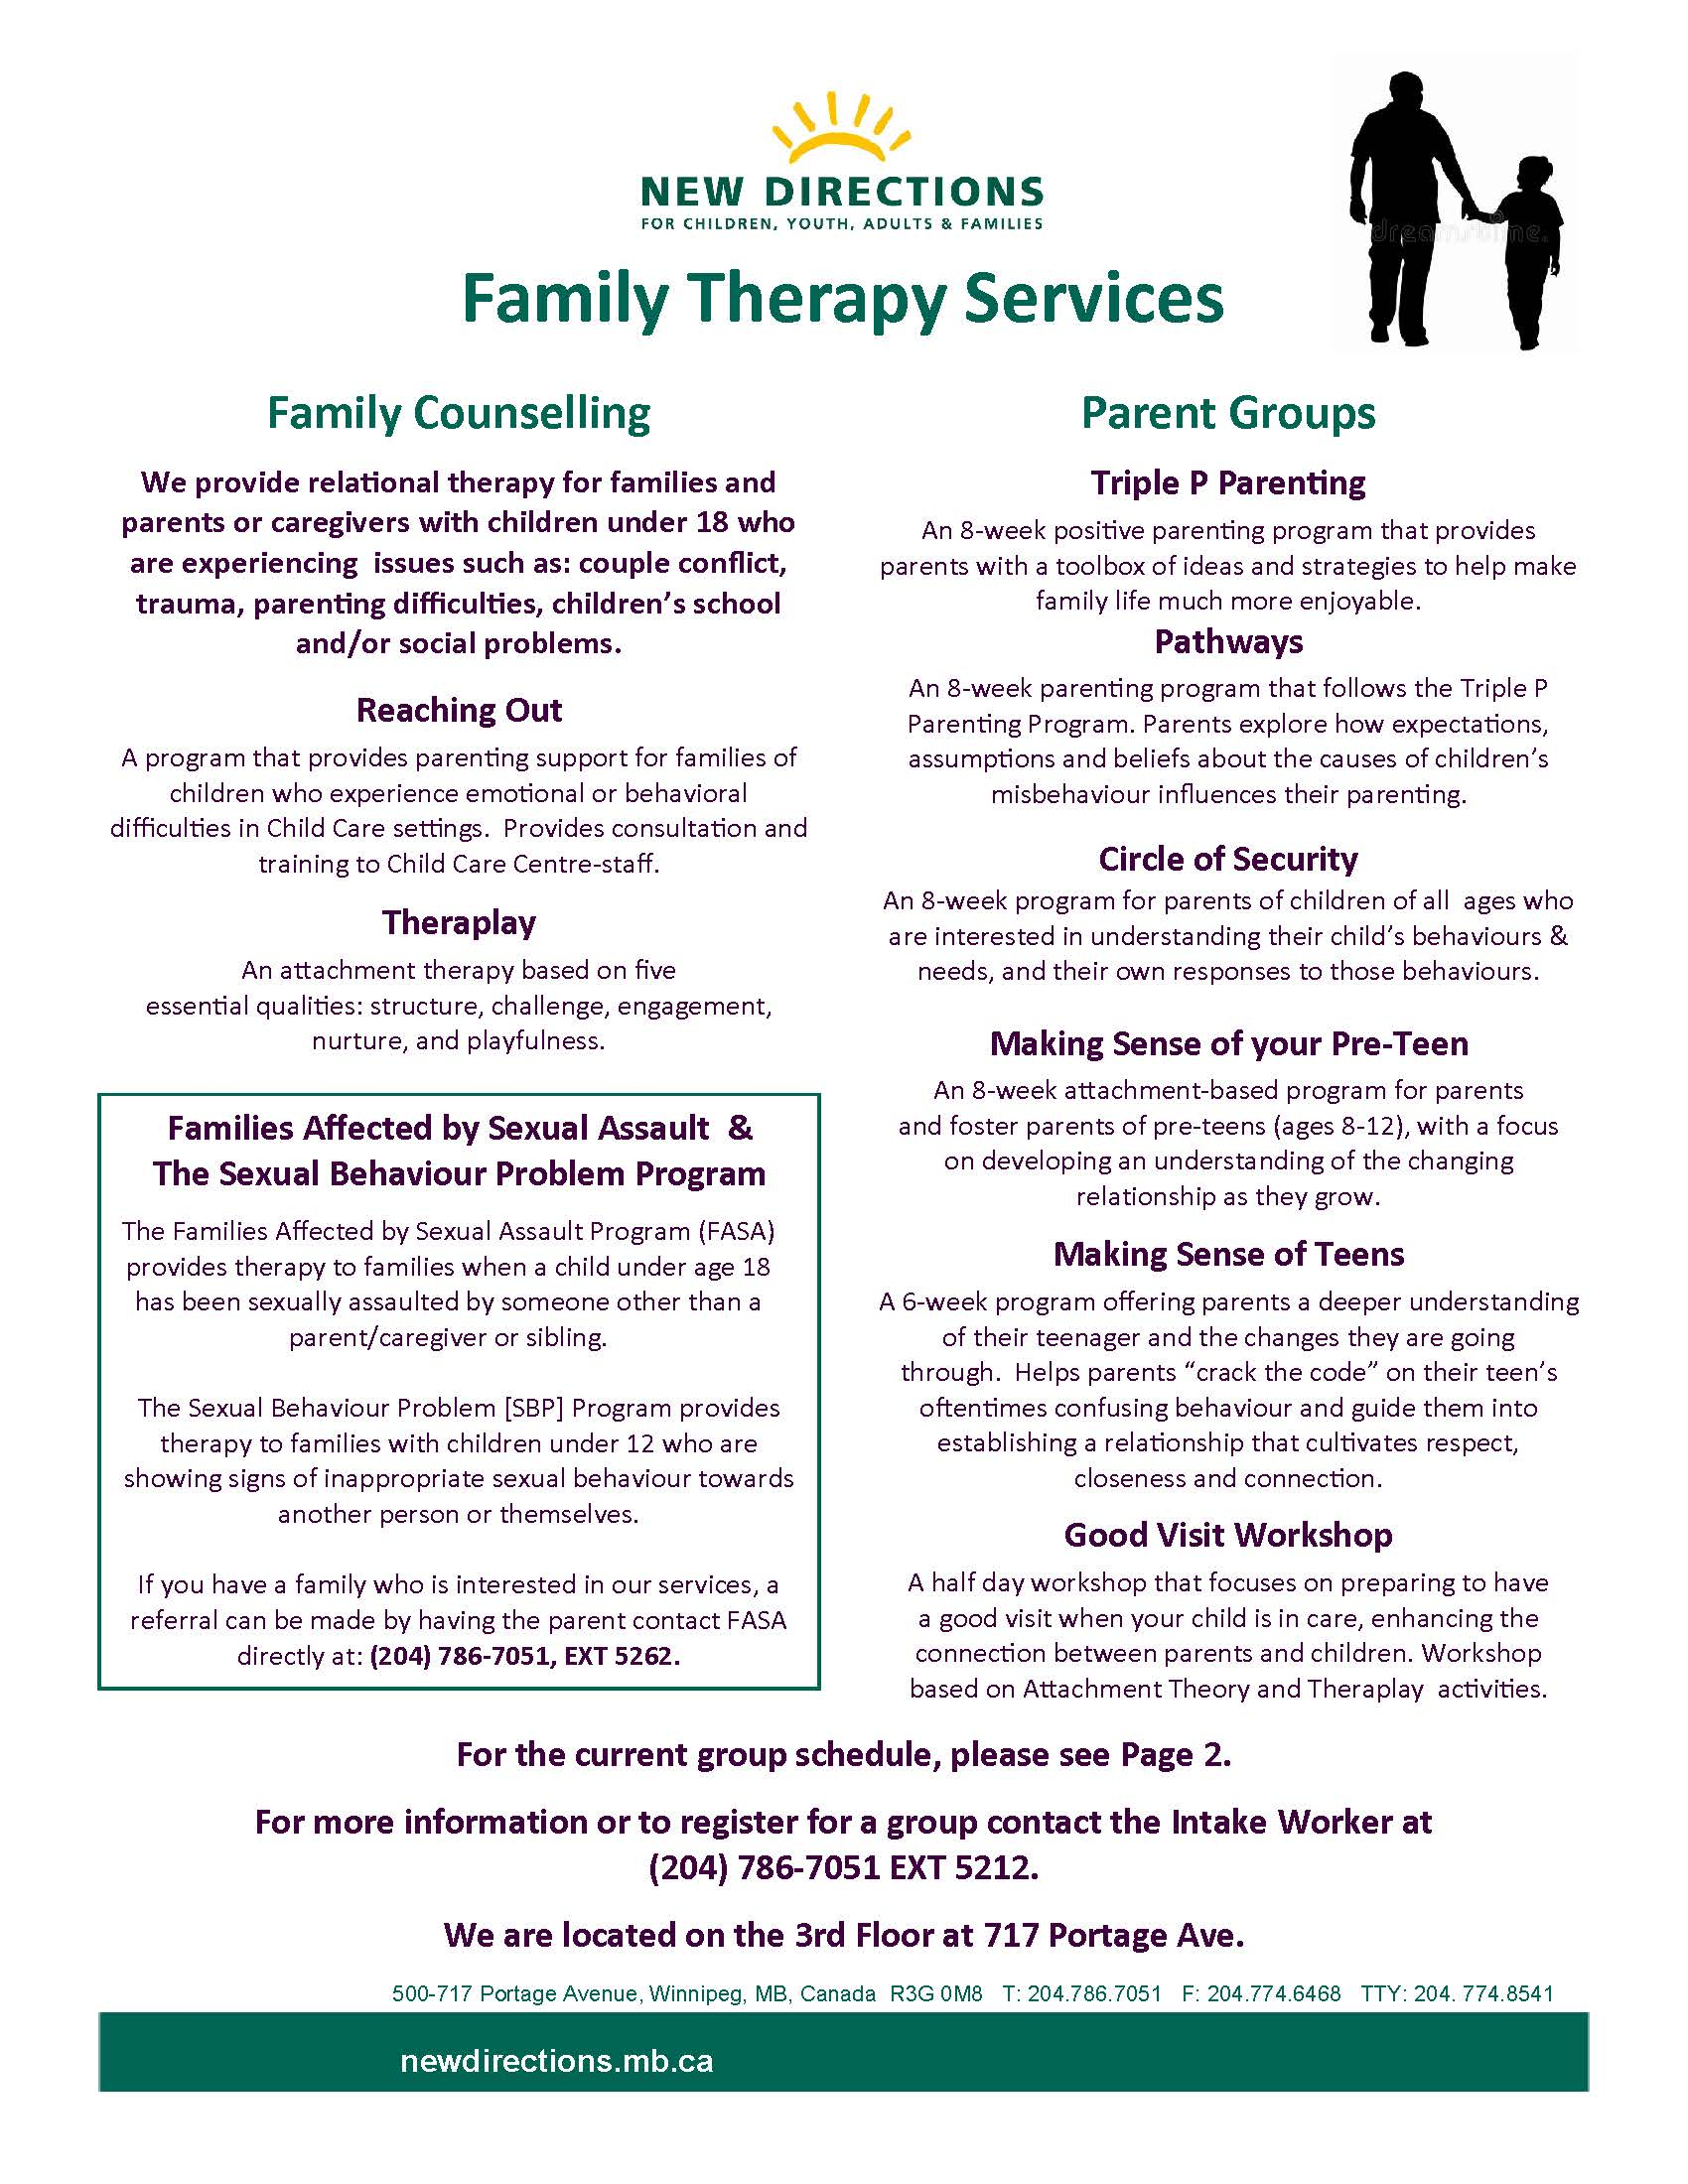 Family Therapy Services - Spring 2020 (003)_Page_1